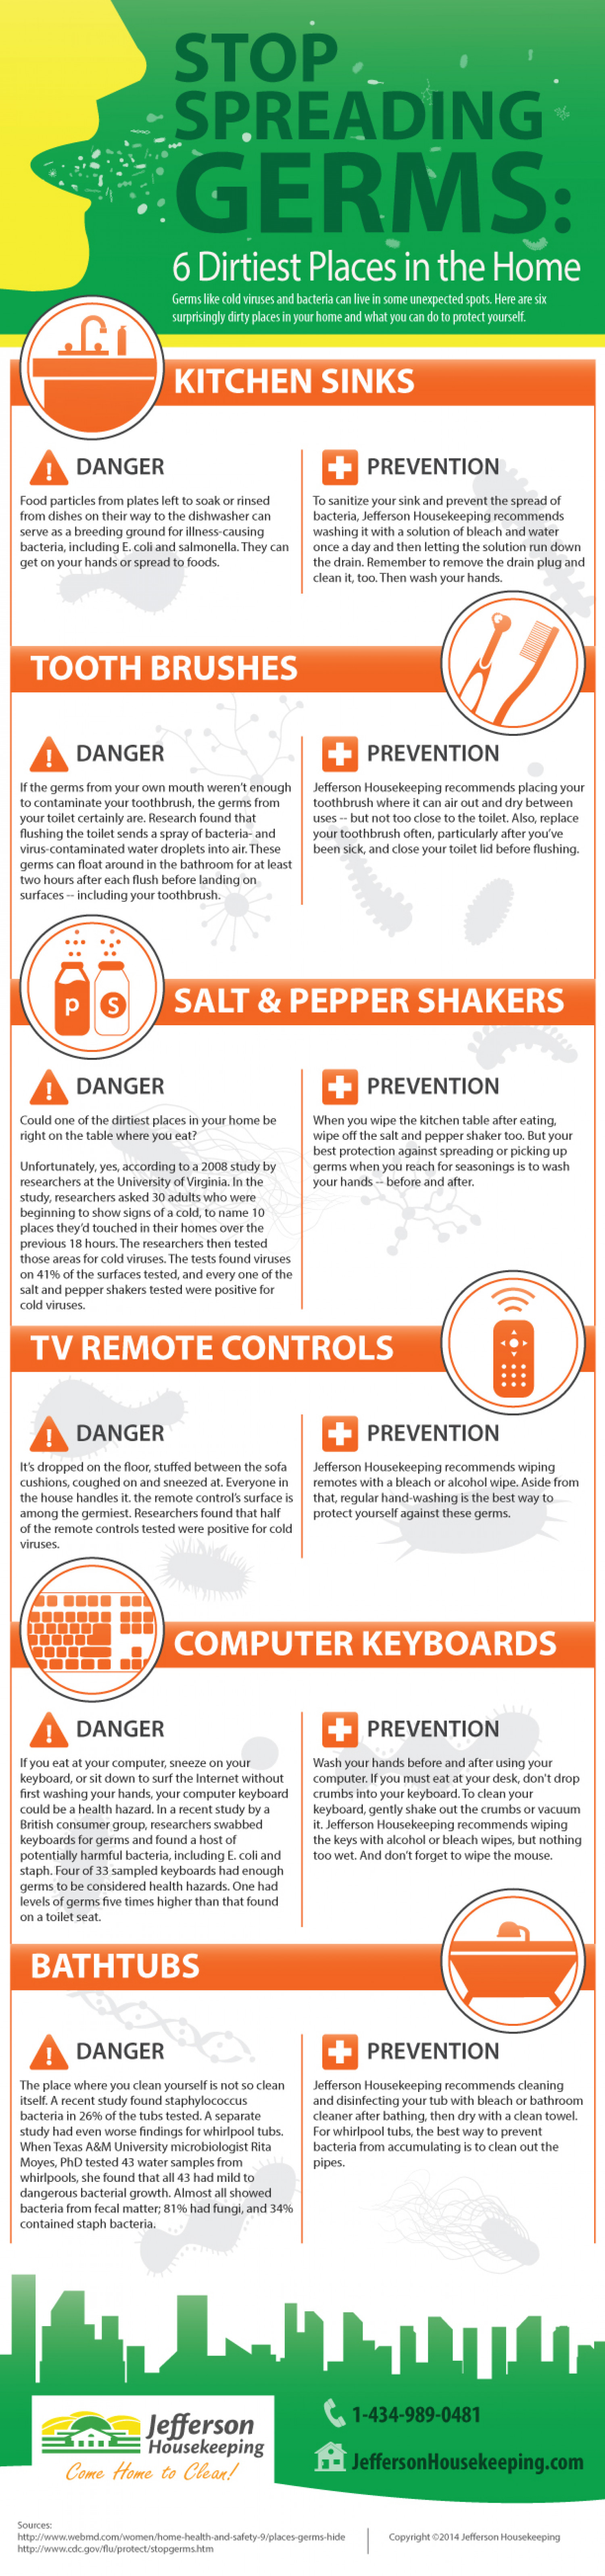 Stop Spreading Germs: 6 Dirtiest Places in the Home Infographic